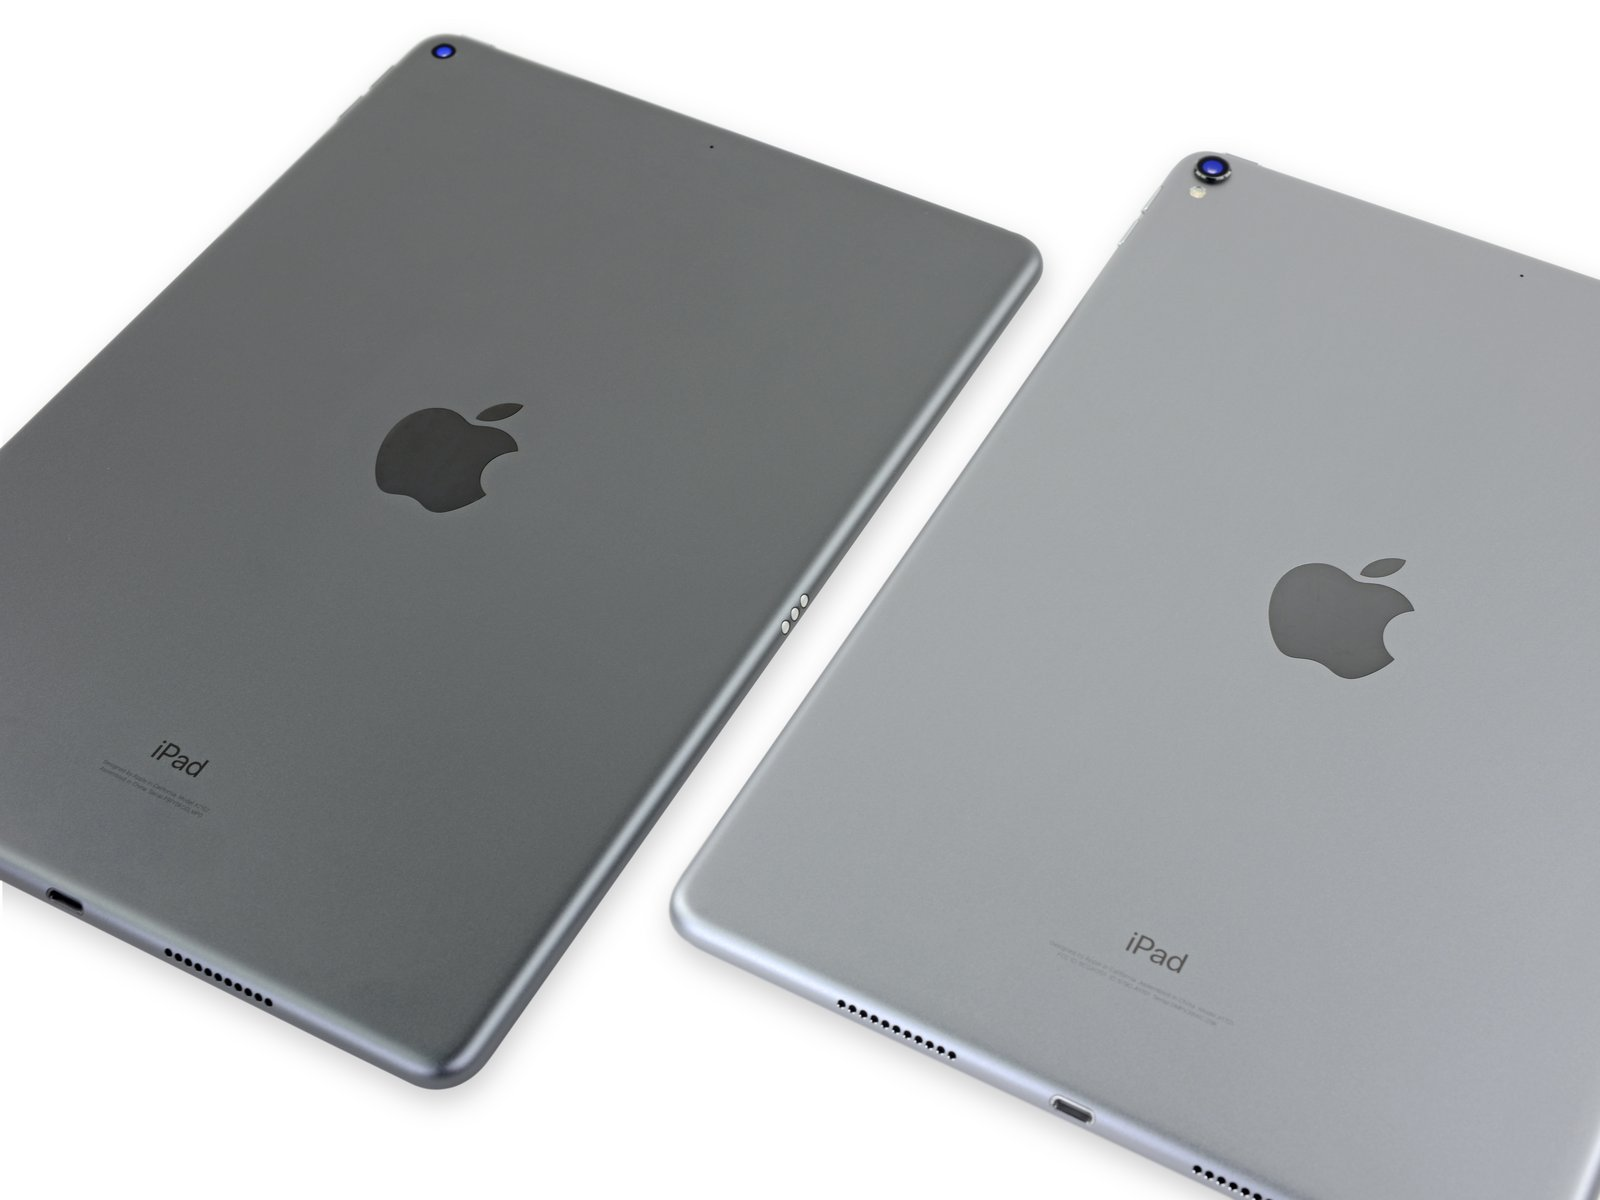 iPad Air 3 comparado con el iPad Pro del 2017 (a la derecha)